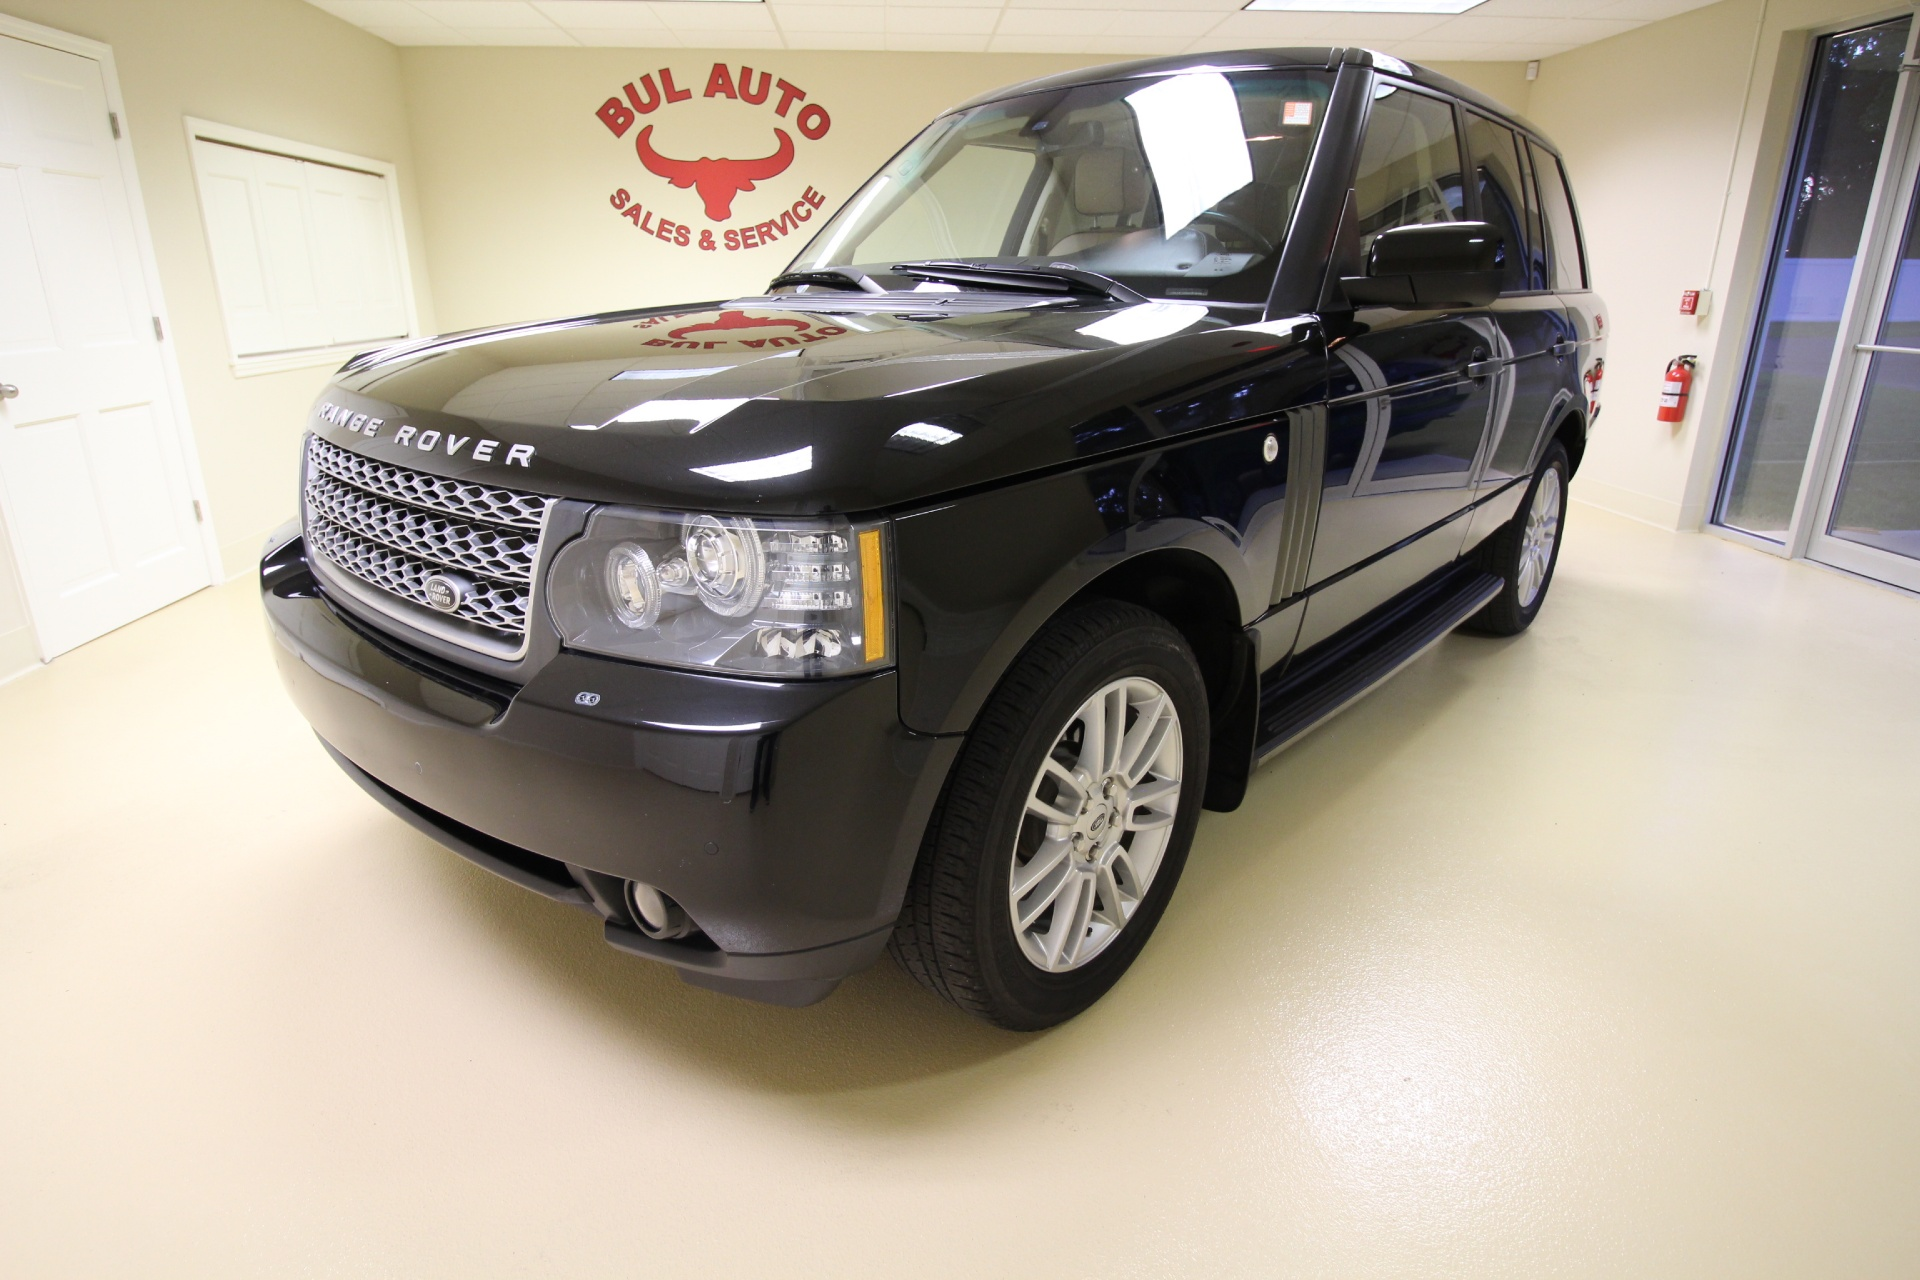 2010 land rover range rover hse stock 16141 for sale near albany ny ny land rover dealer. Black Bedroom Furniture Sets. Home Design Ideas